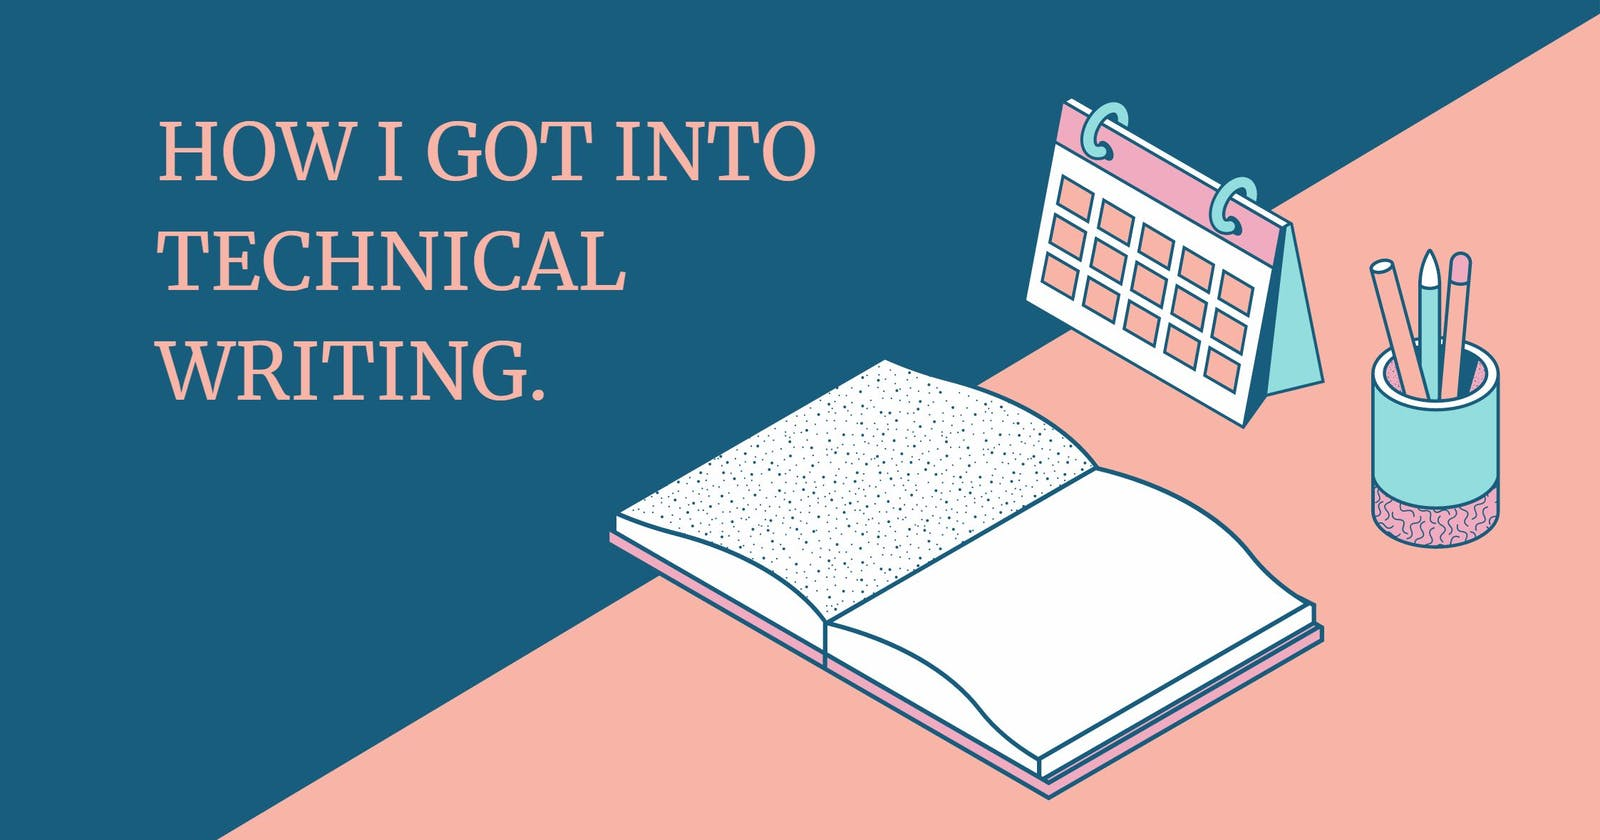 How I got into technical writing